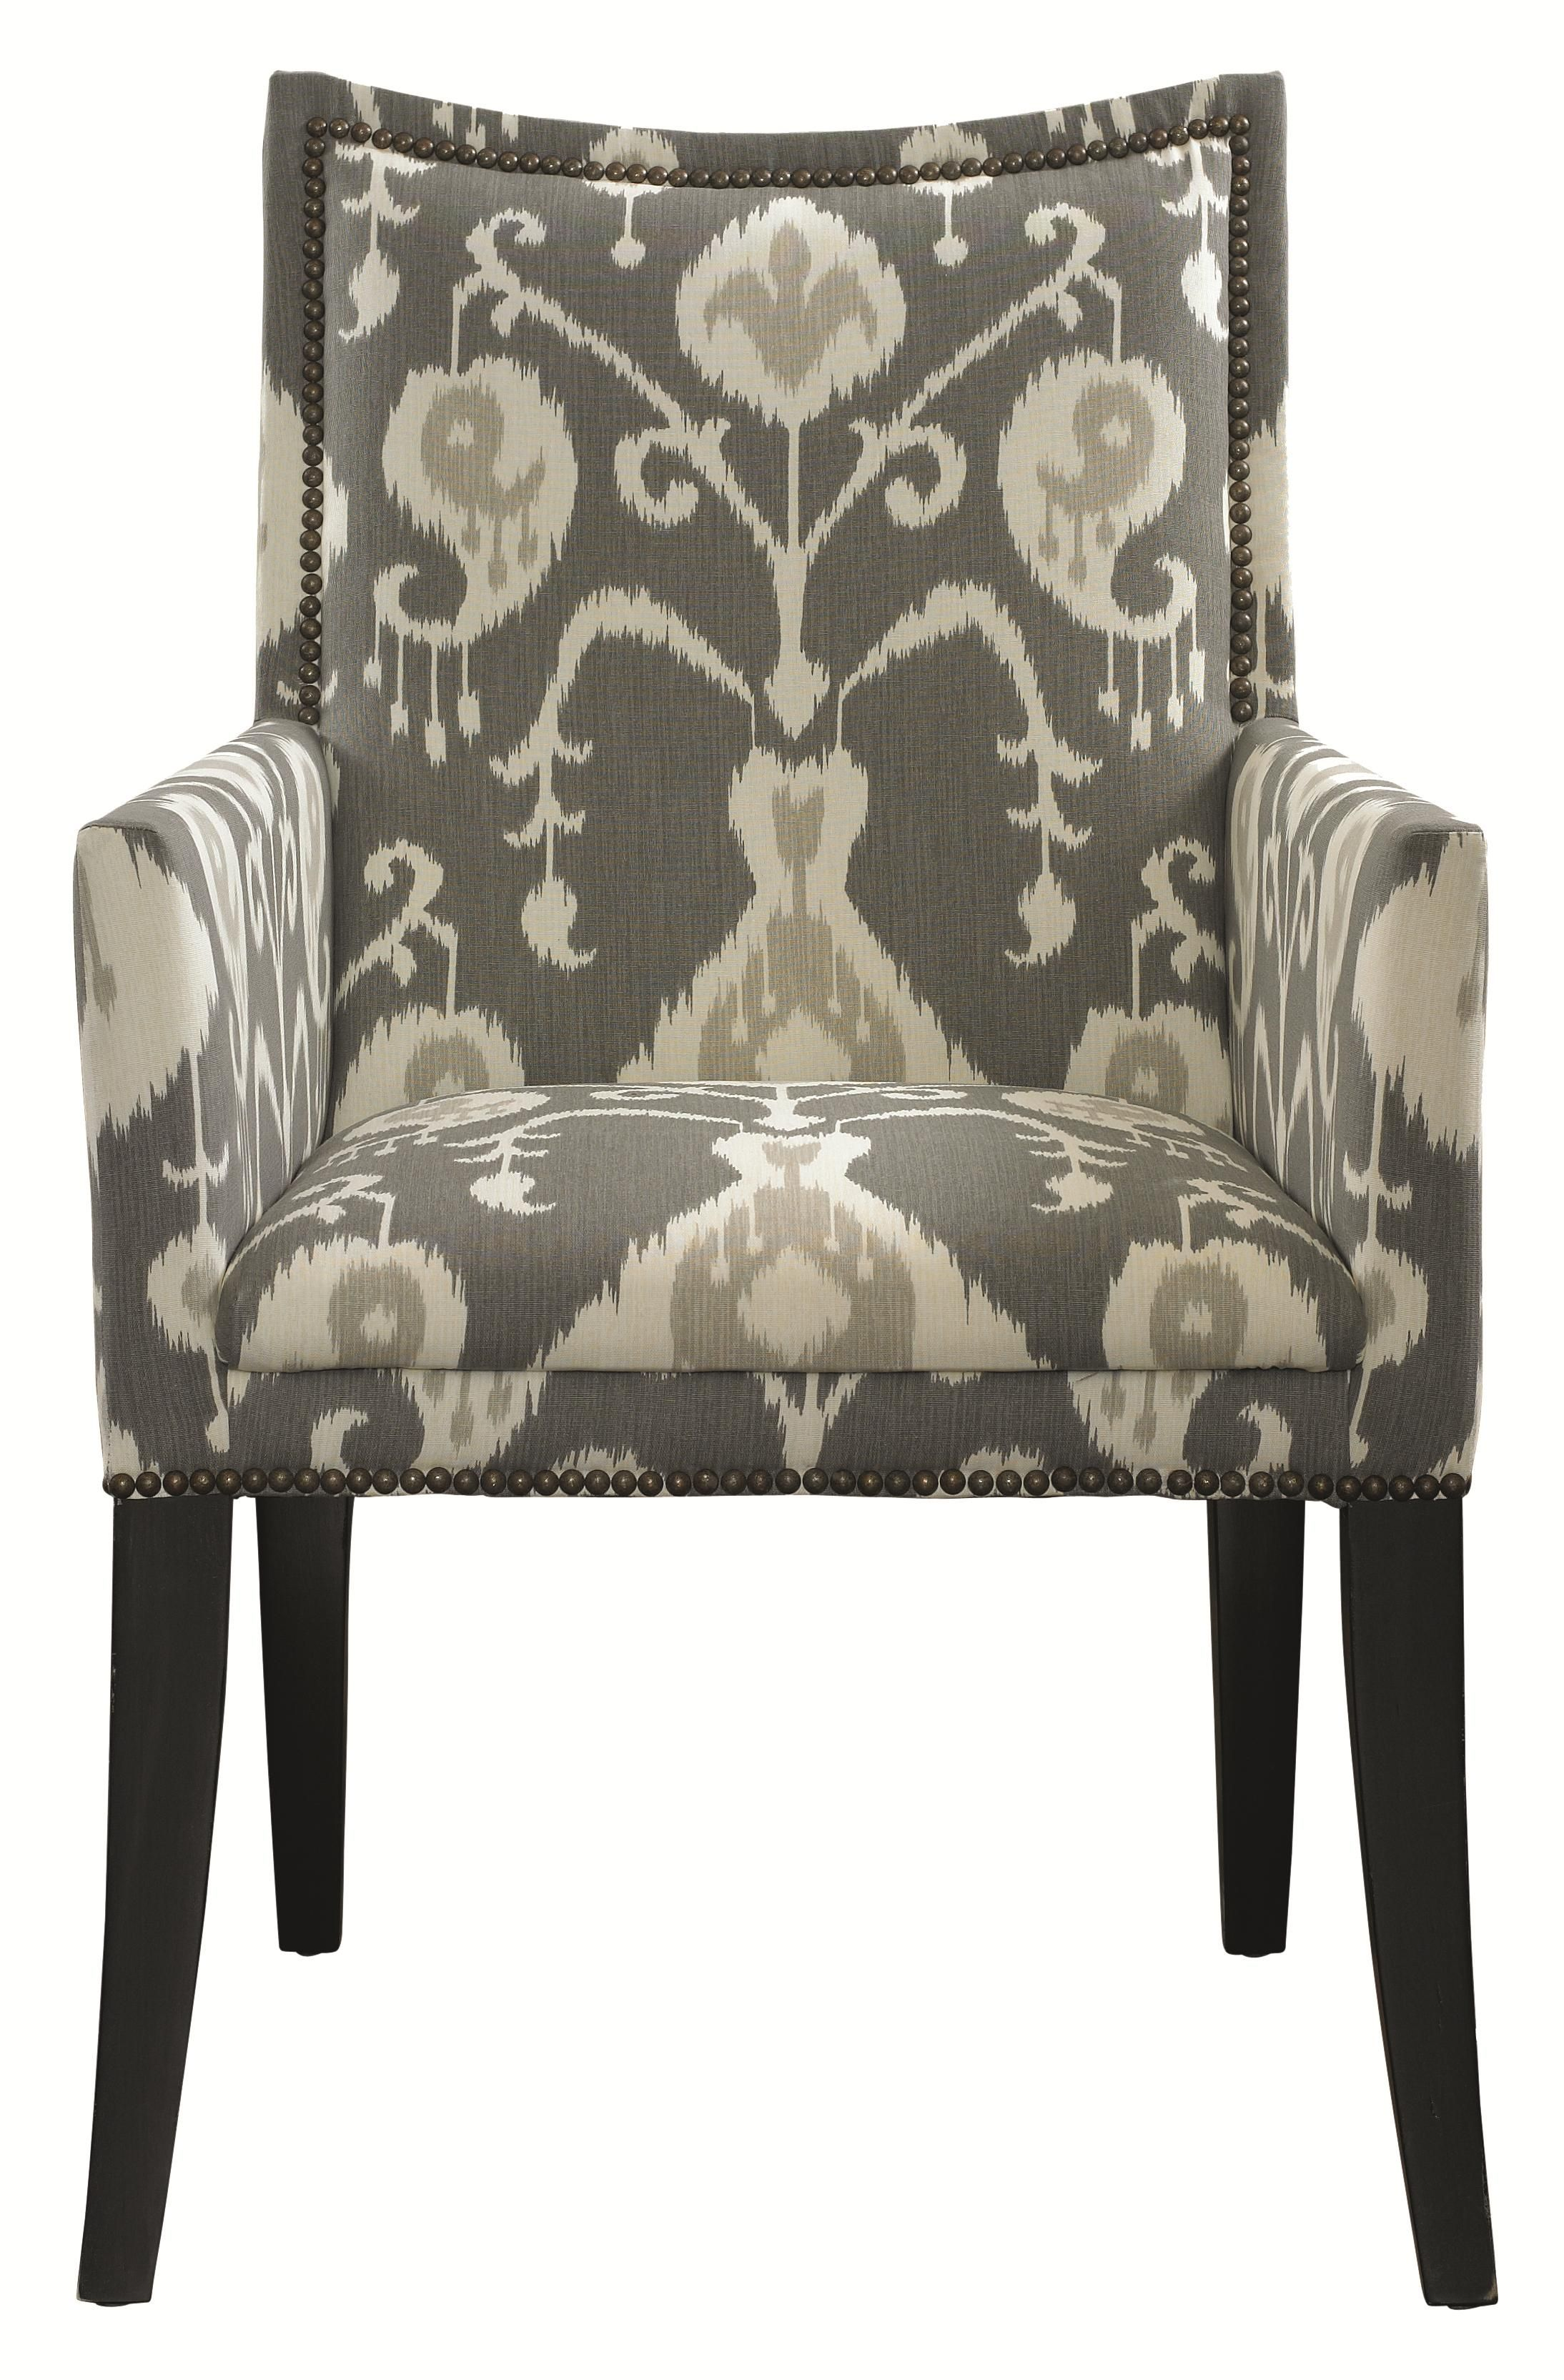 Upholstery Upholstered Dining Chair With Arms By HGTV Home Furniture  Collection